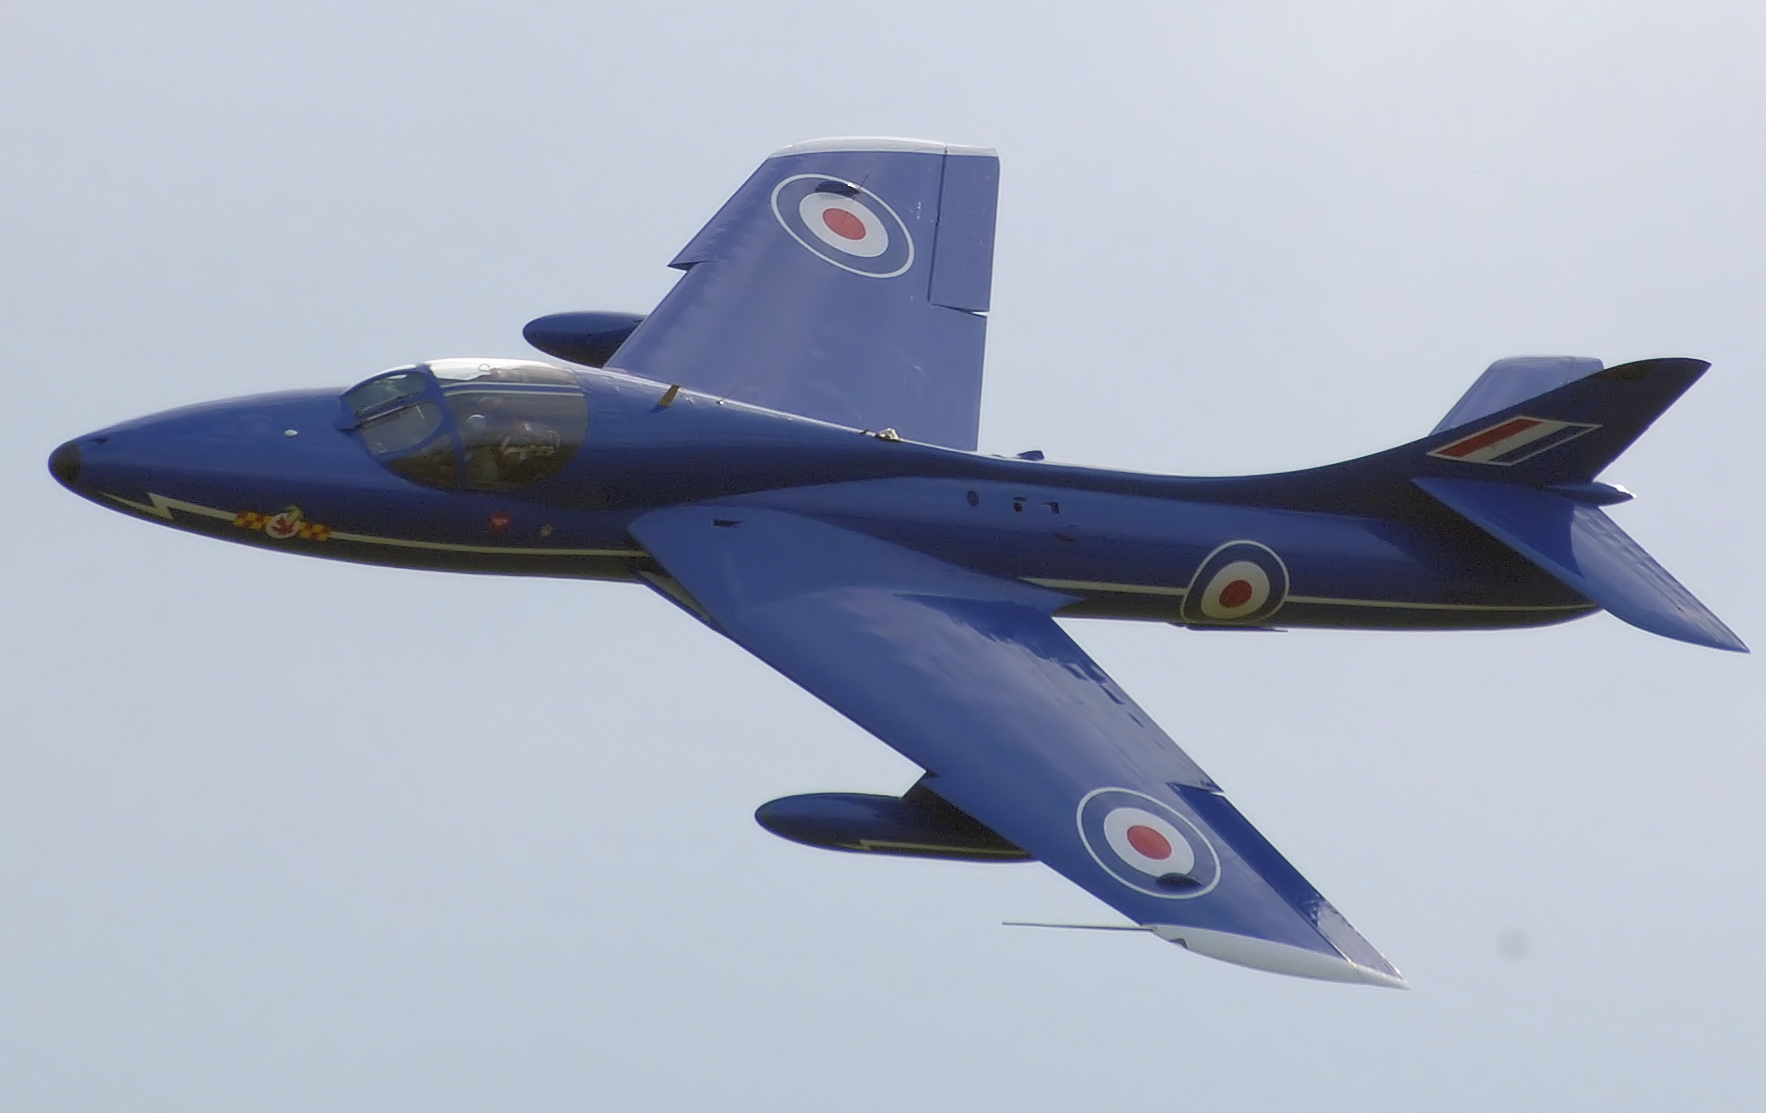 http://upload.wikimedia.org/wikipedia/commons/5/5c/Hawker_hunter_t7_blue_diamond_in_planform_arp.jpg